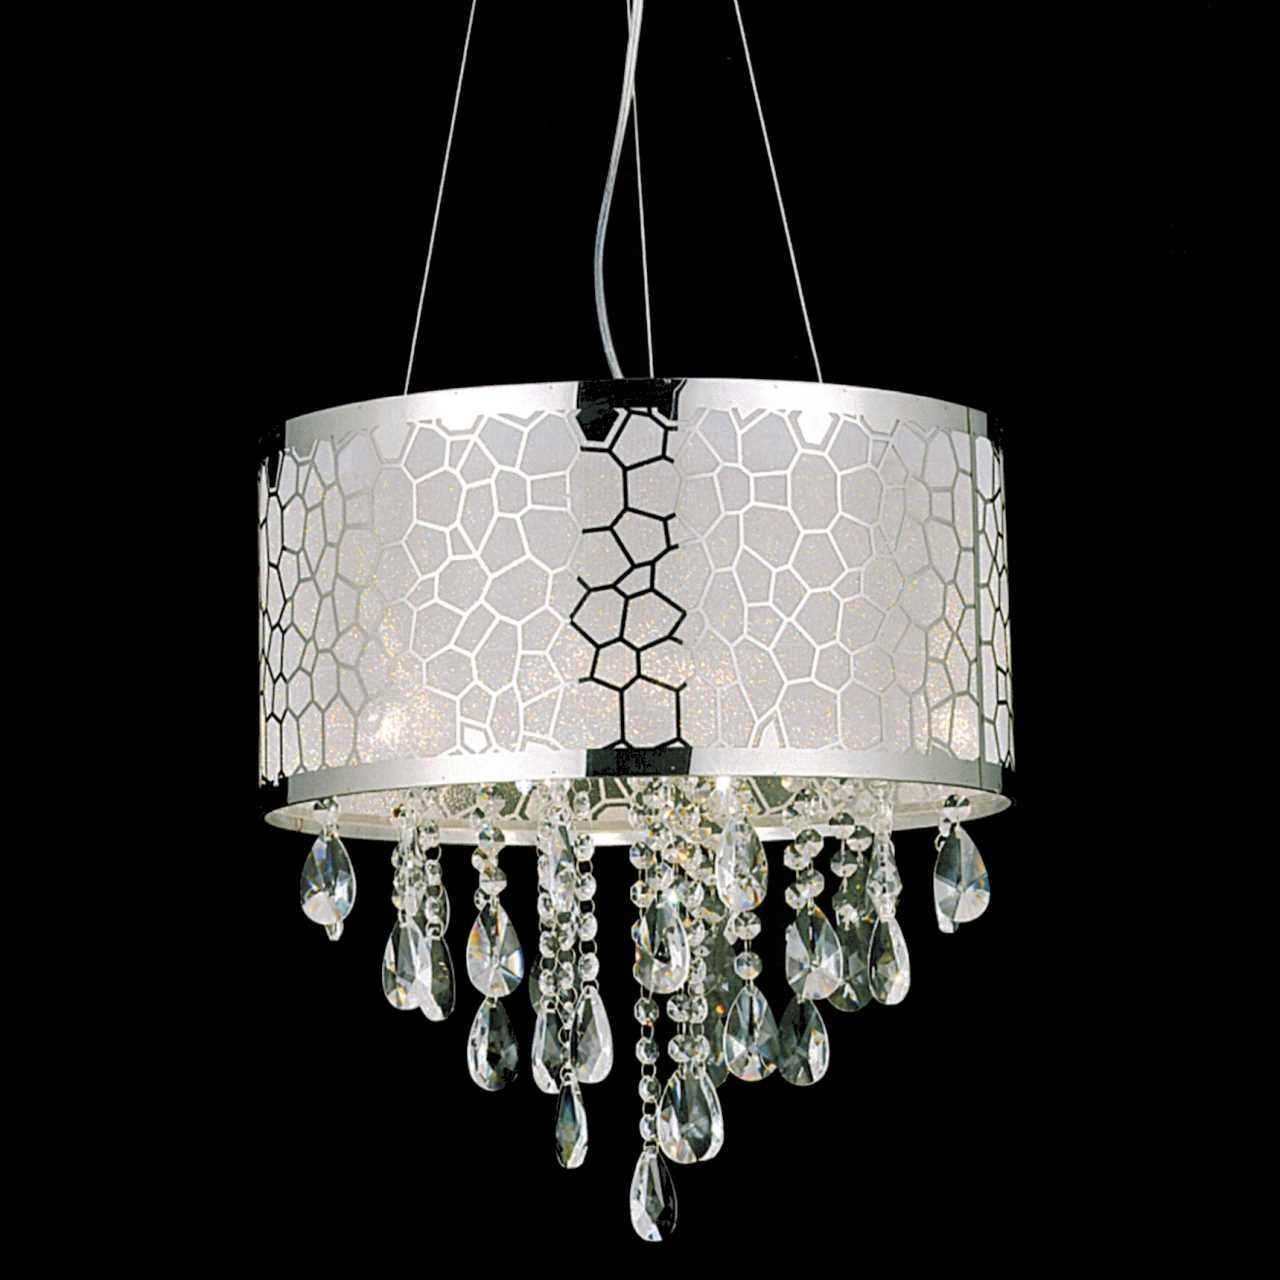 Chandelier Grey Shades Crystal With Drum Shade Gray Using Addition Within Chandelier With Shades And Crystals (Image 13 of 25)